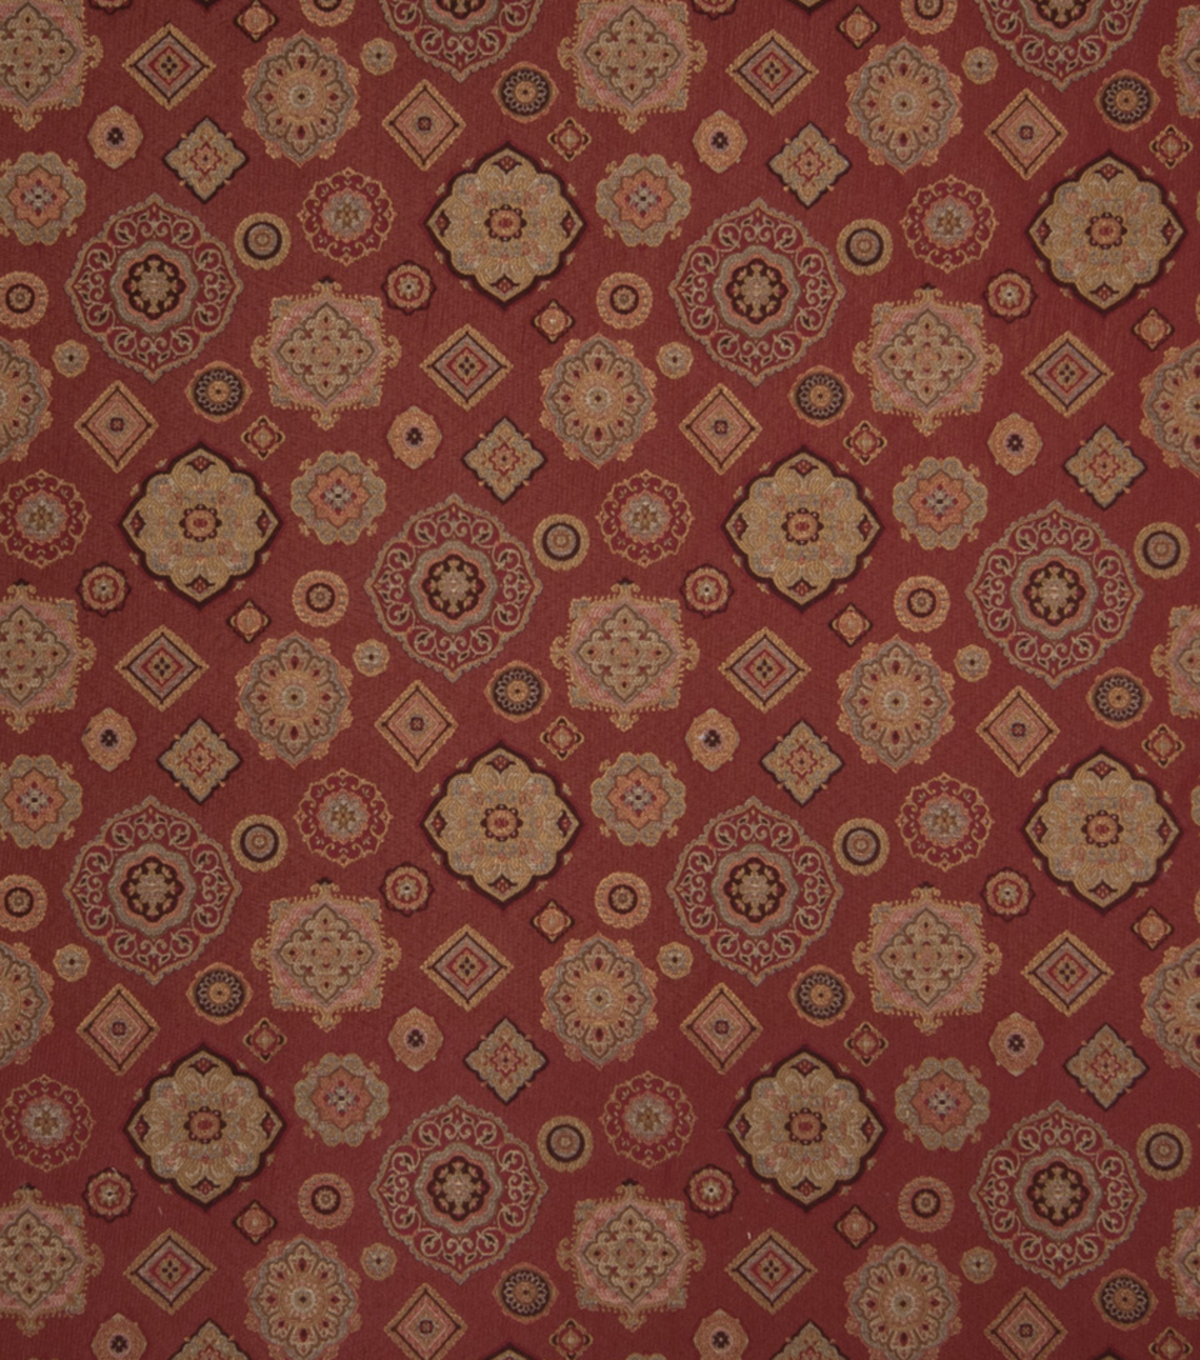 Home Decor 8\u0022x8\u0022 Fabric Swatch-Upholstery Fabric Eaton Square Allow Red